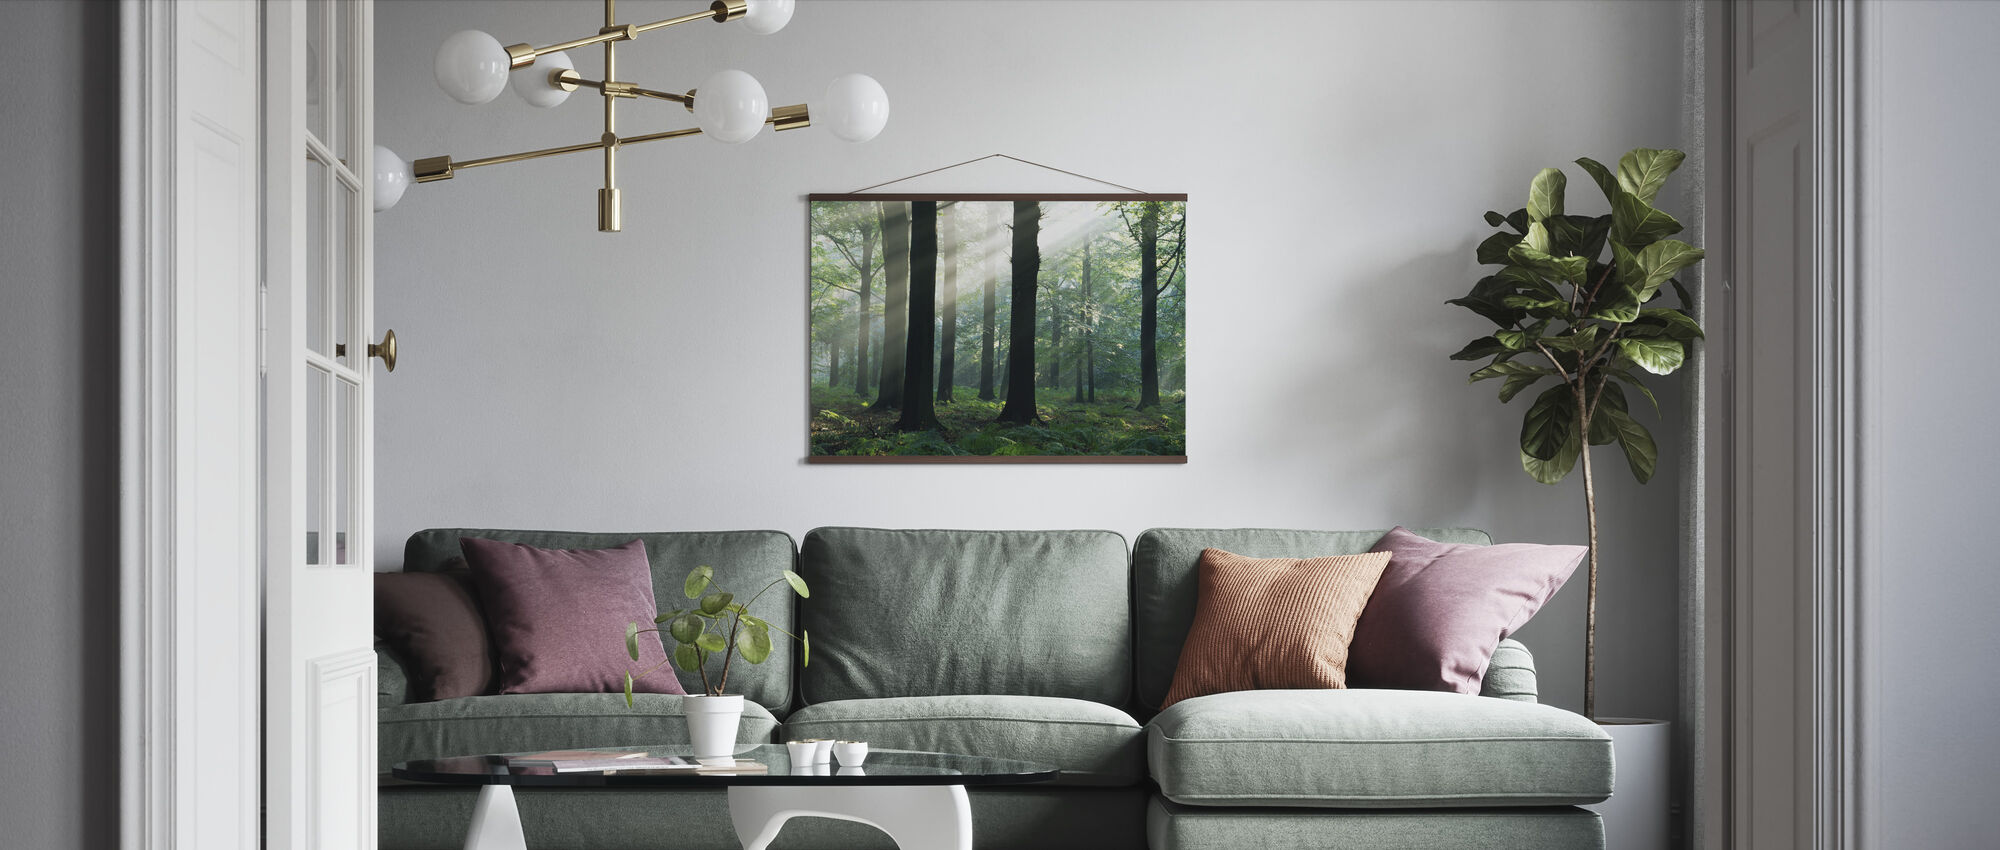 Morning Sunshine - Poster - Living Room